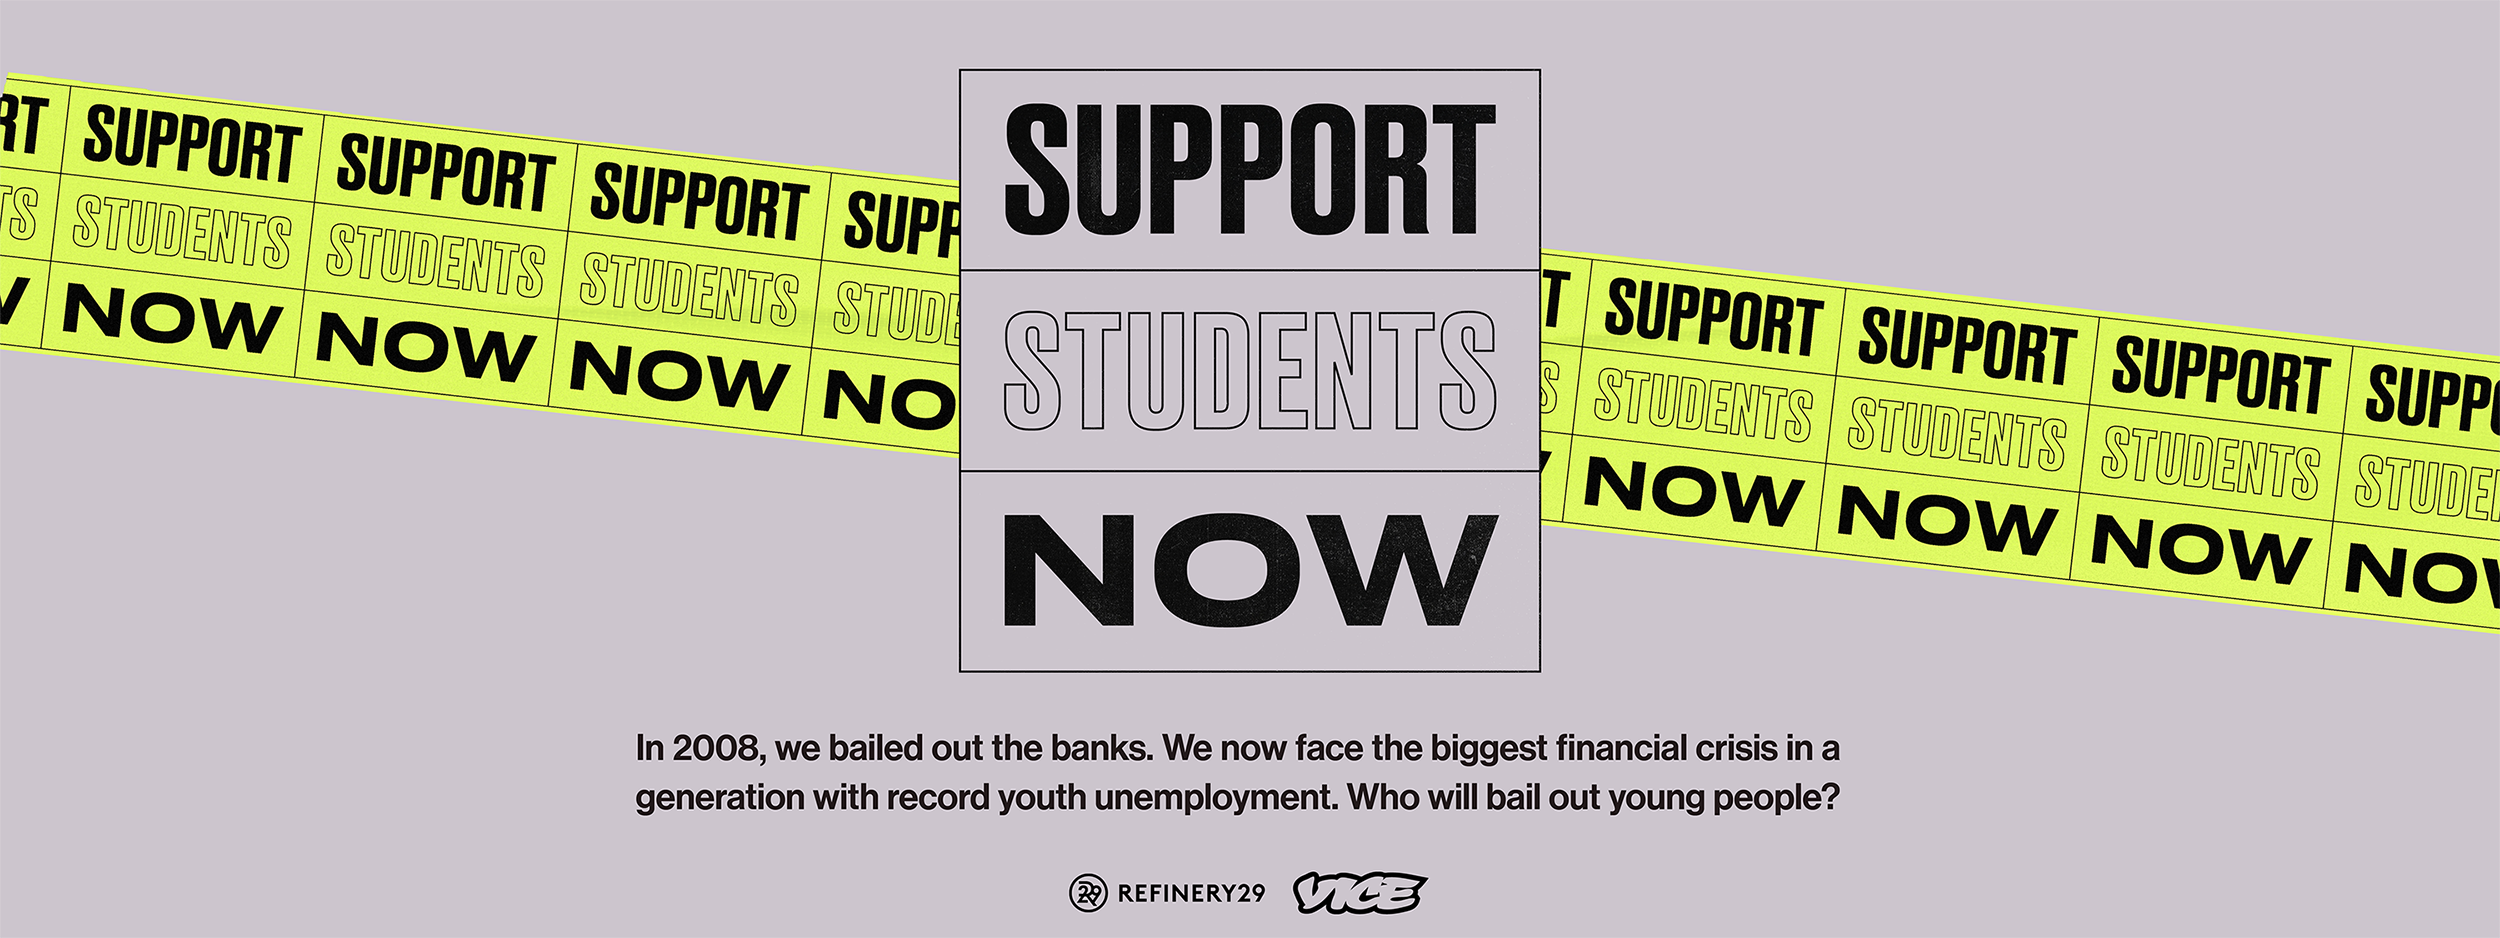 Support Students Now